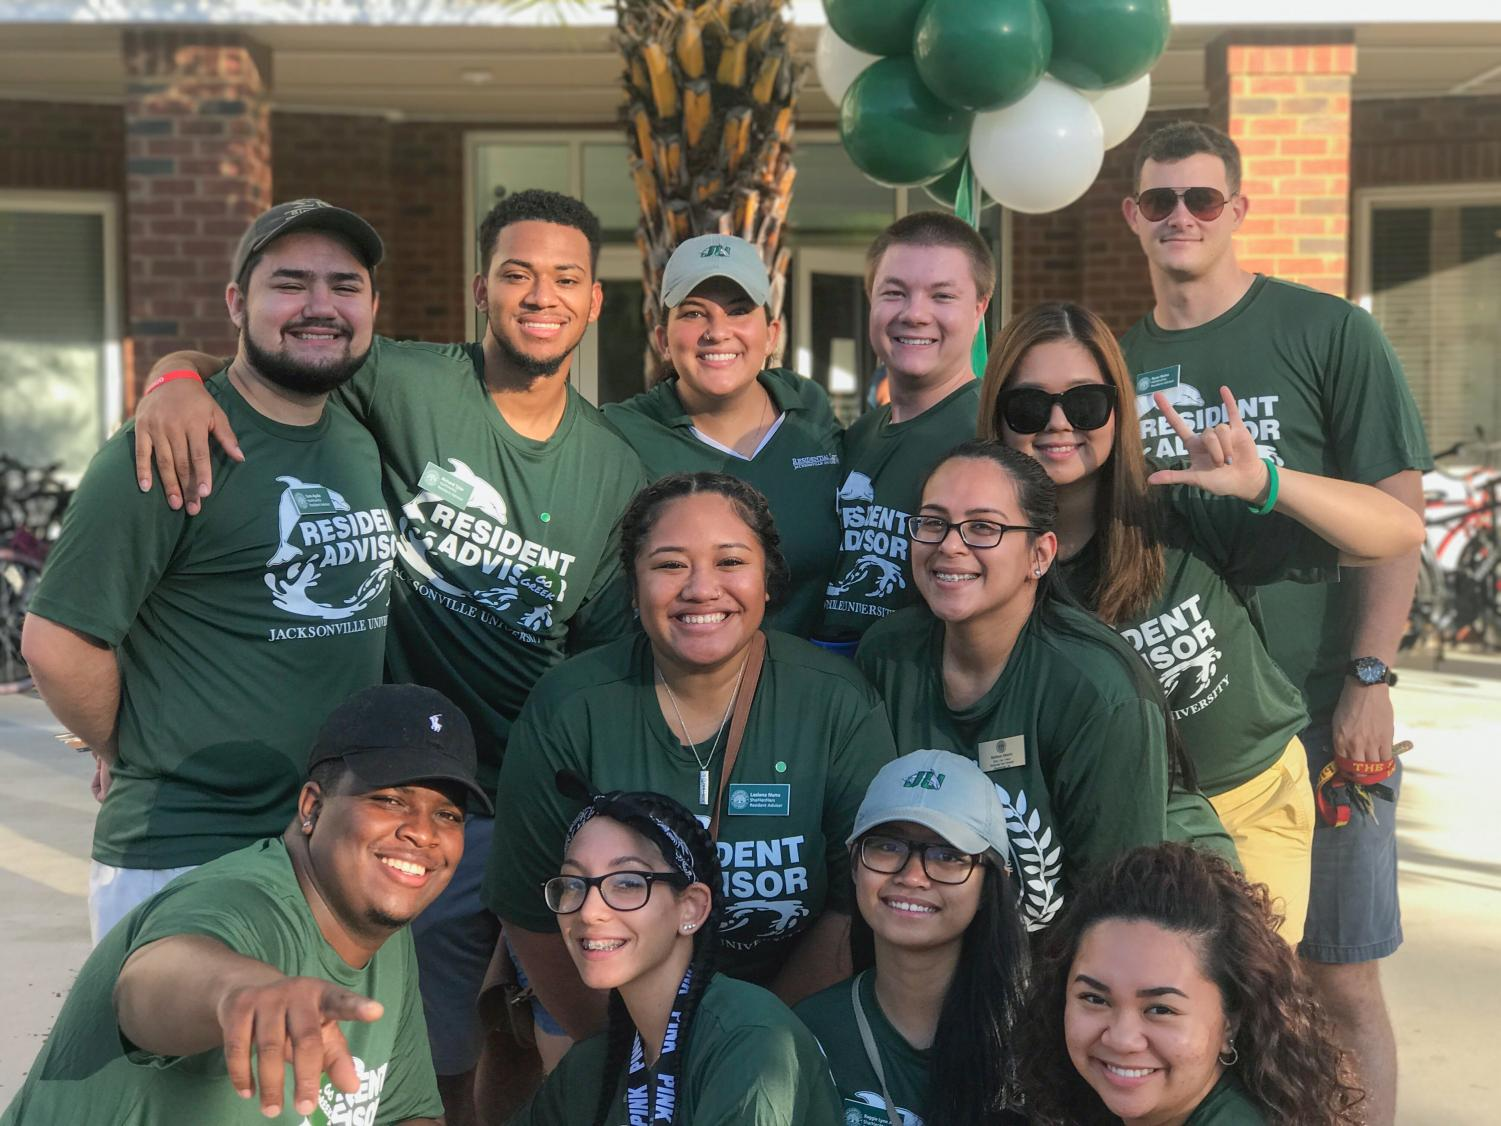 From left to right, RAs Sam Ayala, Richard Tyler, Professional Staff member Kelsey Parker, Kasey Williams, Ruda Less, and Ryan Noles. In the middle row, from left to right, Lasiana Nunu & Professional Staff member Melissa Alberto. Lastly, in the bottom row, from left to right, Marcus Shields, Maggie Ruiz, Reggie Lynn Agulto and Angie Acedera.